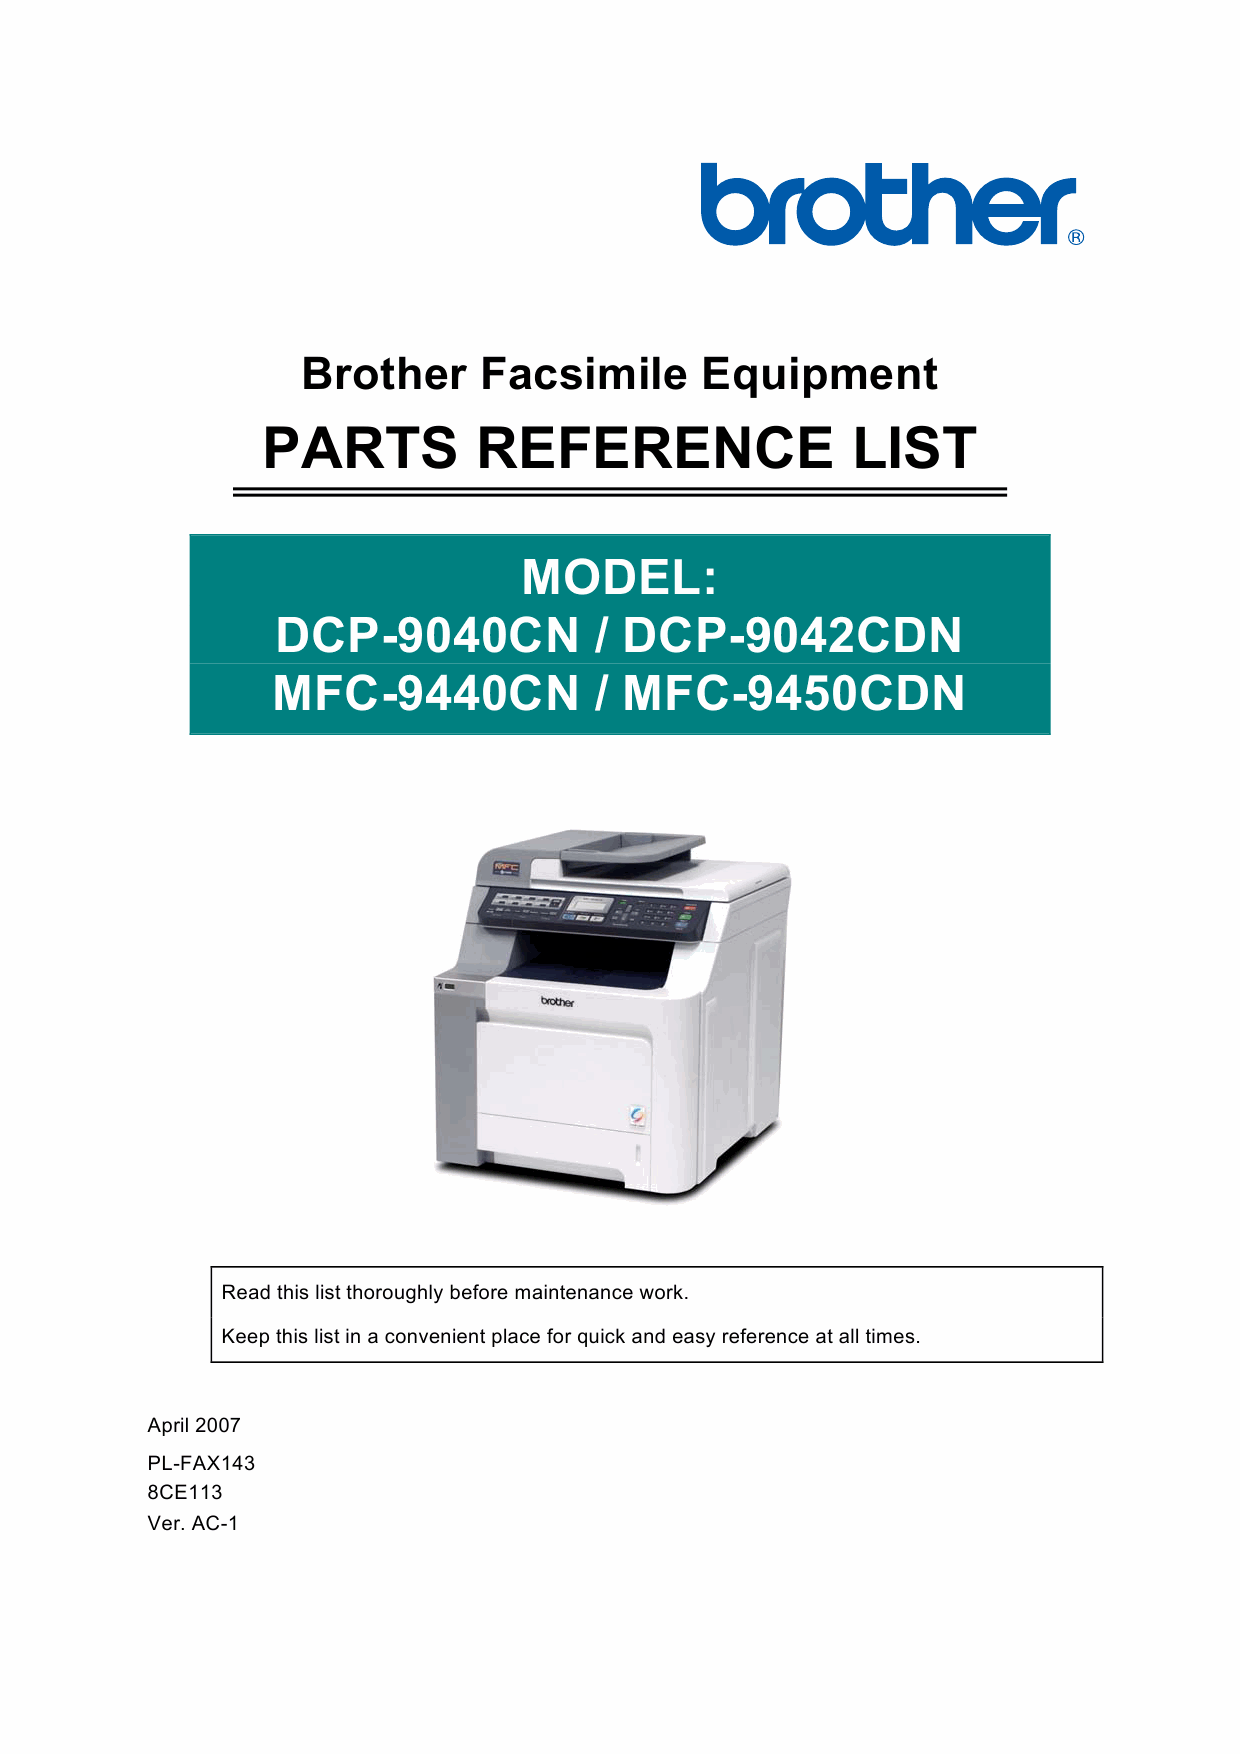 Brother MFC 9440CN 9450CDN DCP9040CN 9042CND Parts Reference-1